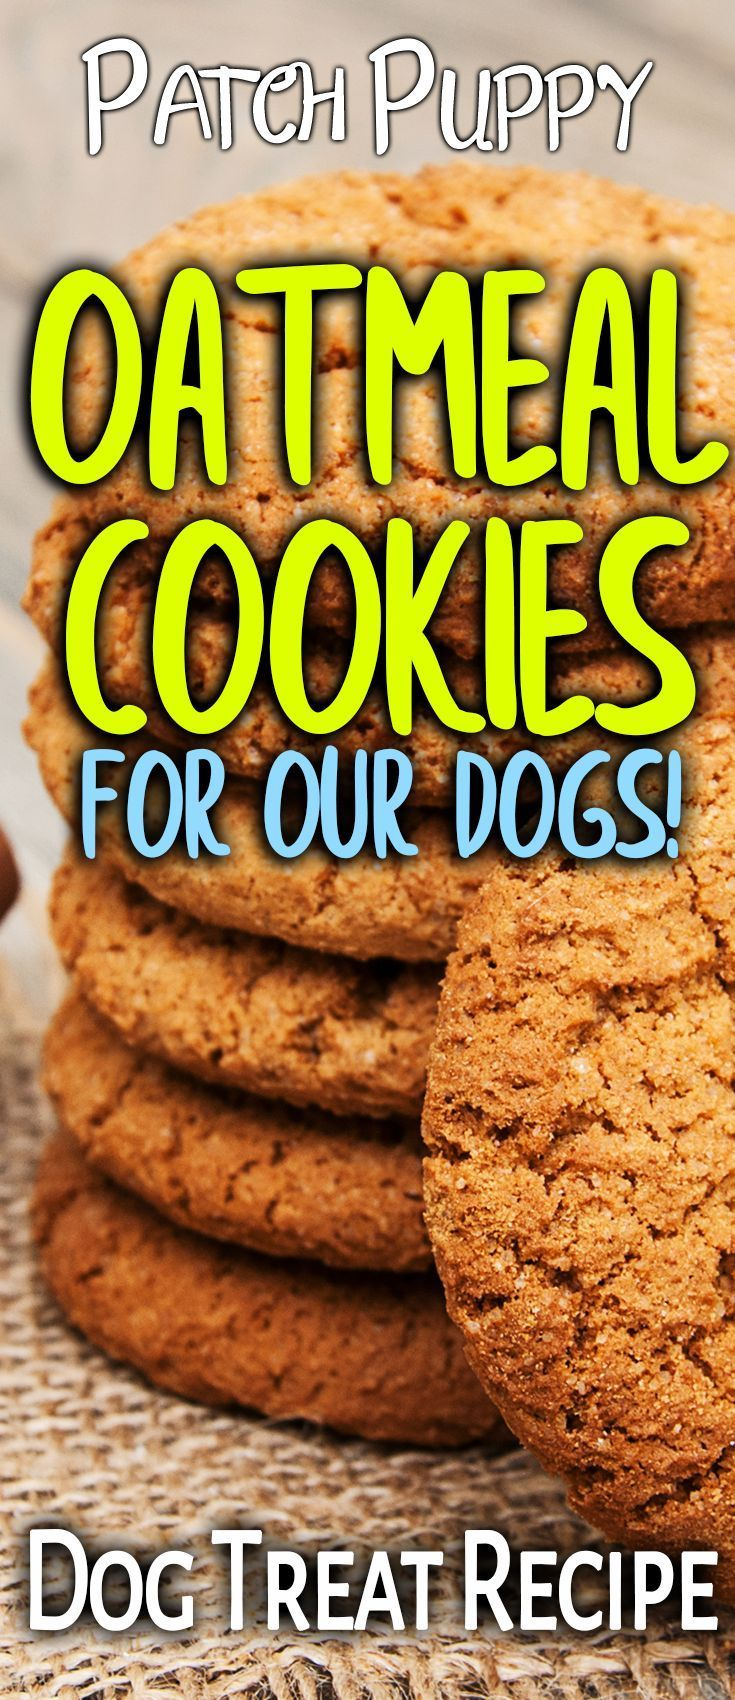 DIY / Homemade Oatmeal Cookies for Dogs Recipe